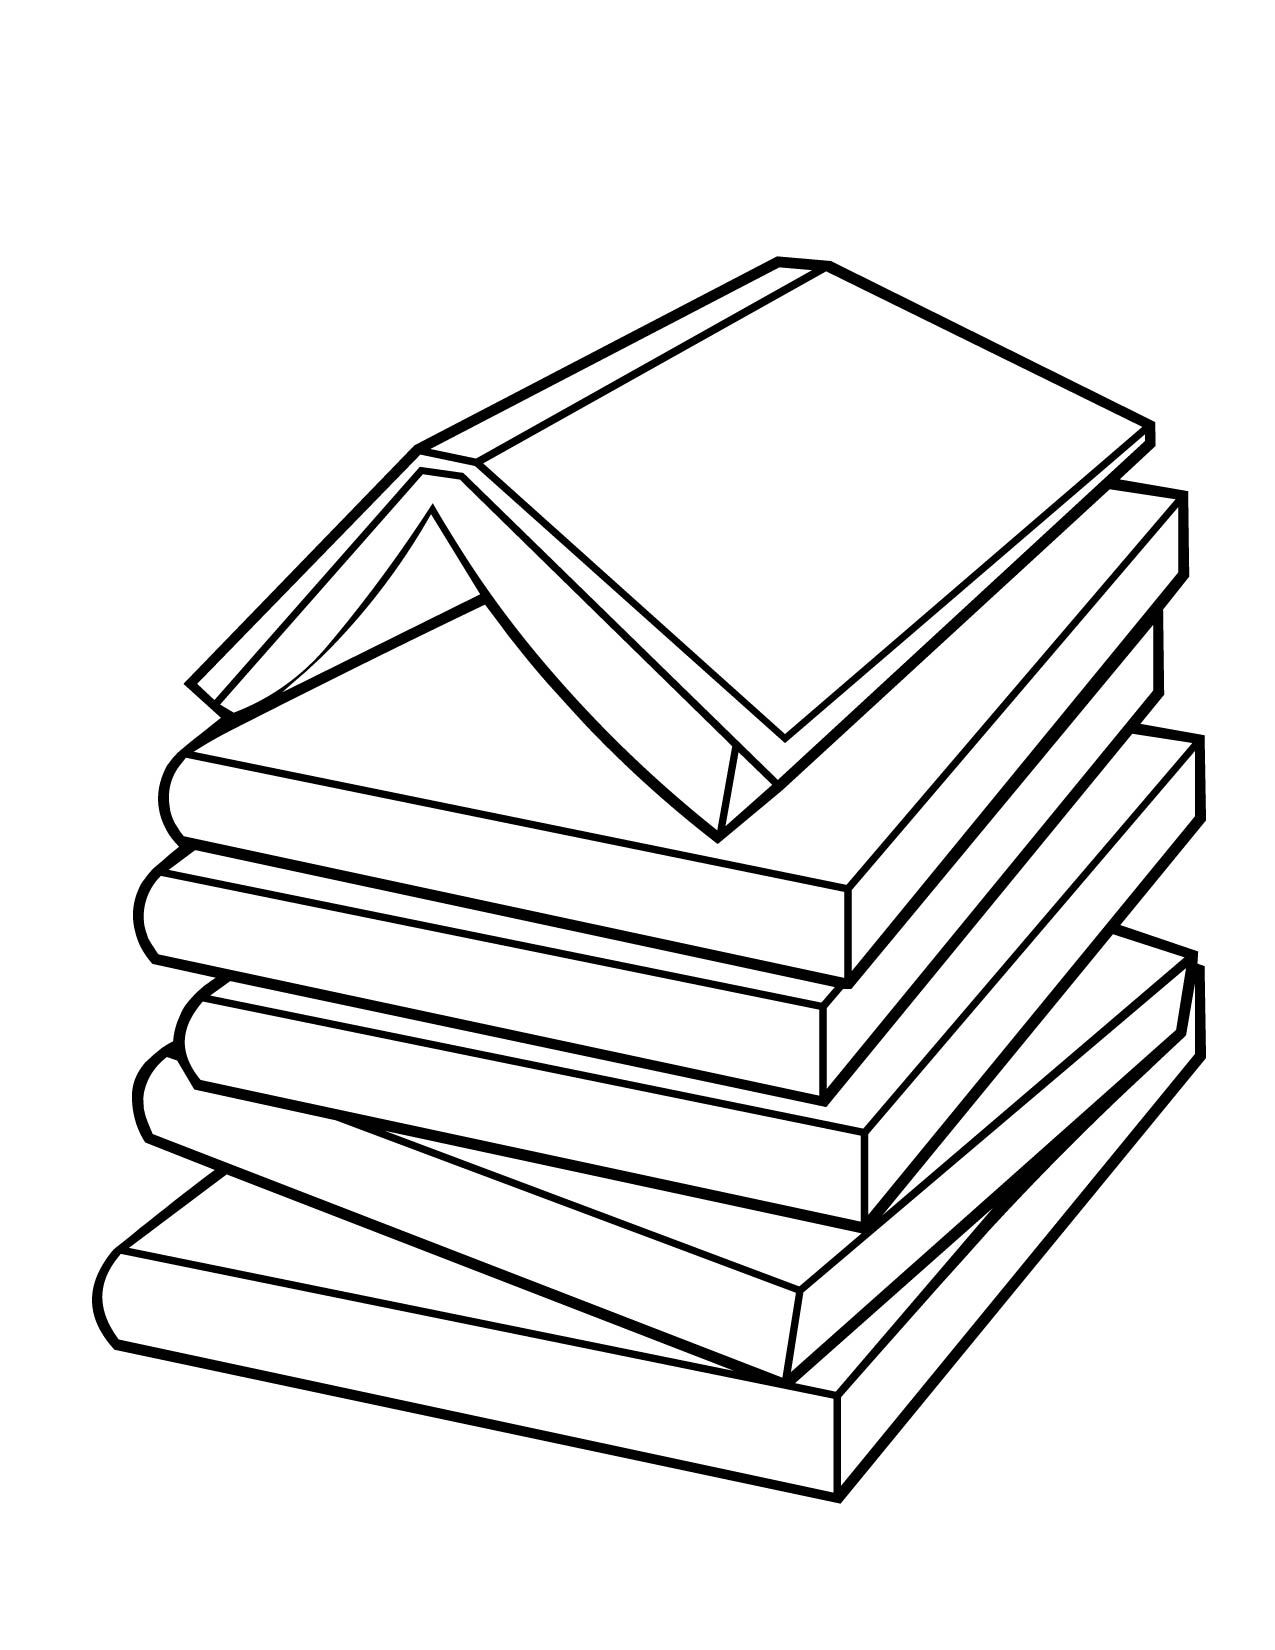 books coloring page - Book Pictures To Color